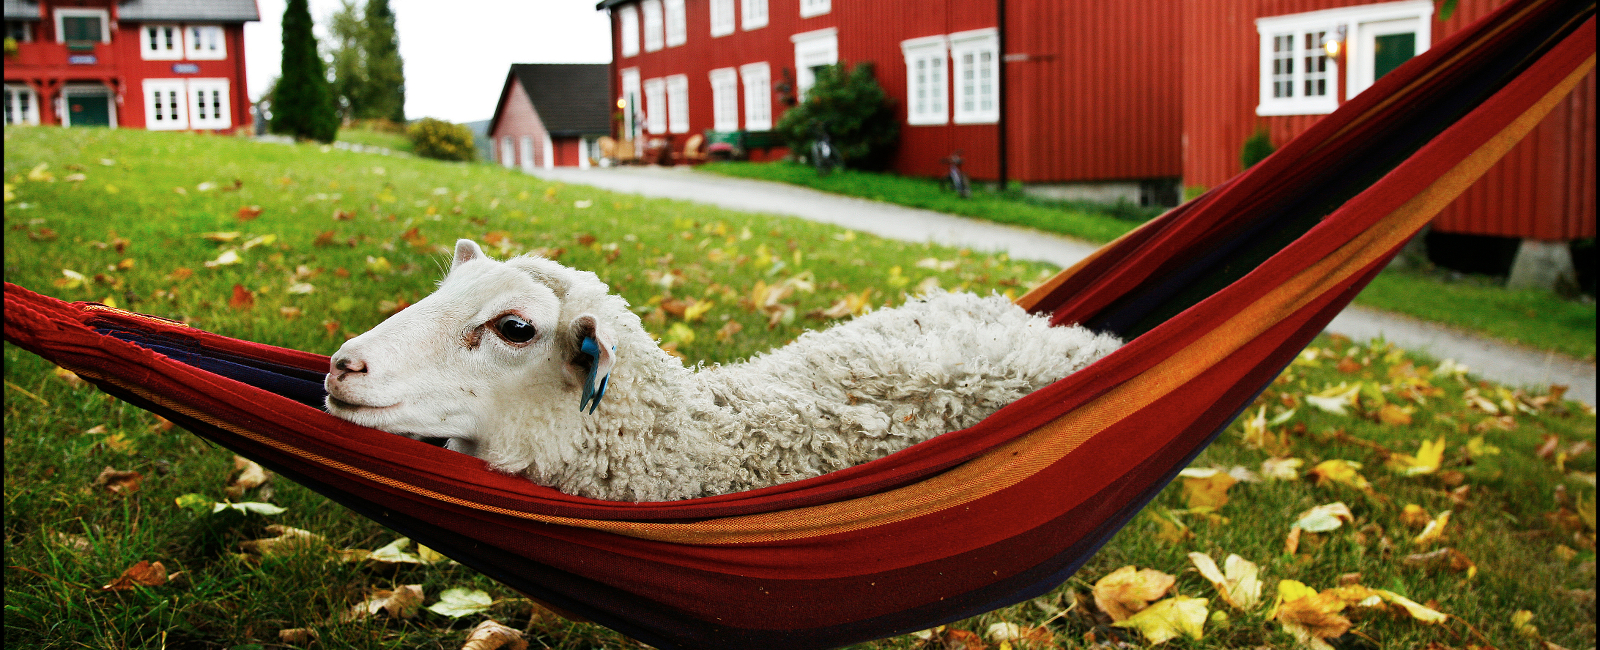 Sheep relaxing in the hammock at Berg Farm, a member of the Golden Road Photo: Magnar Kirknes